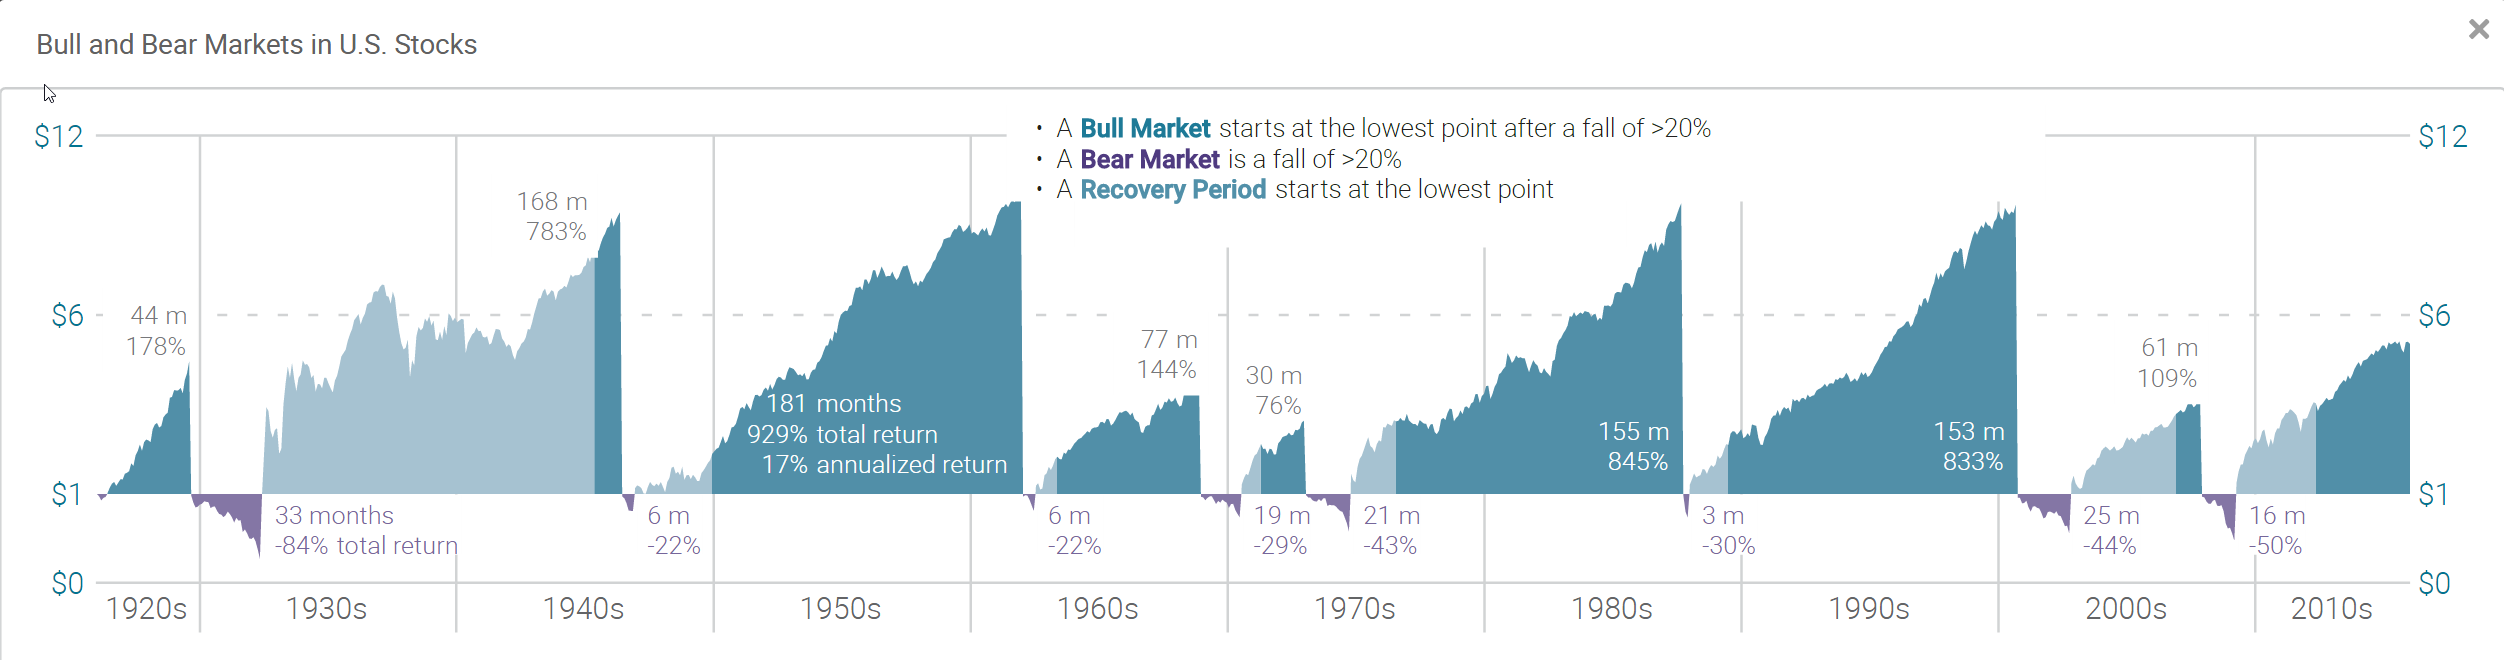 Bull And Bear Markets In US Stocks